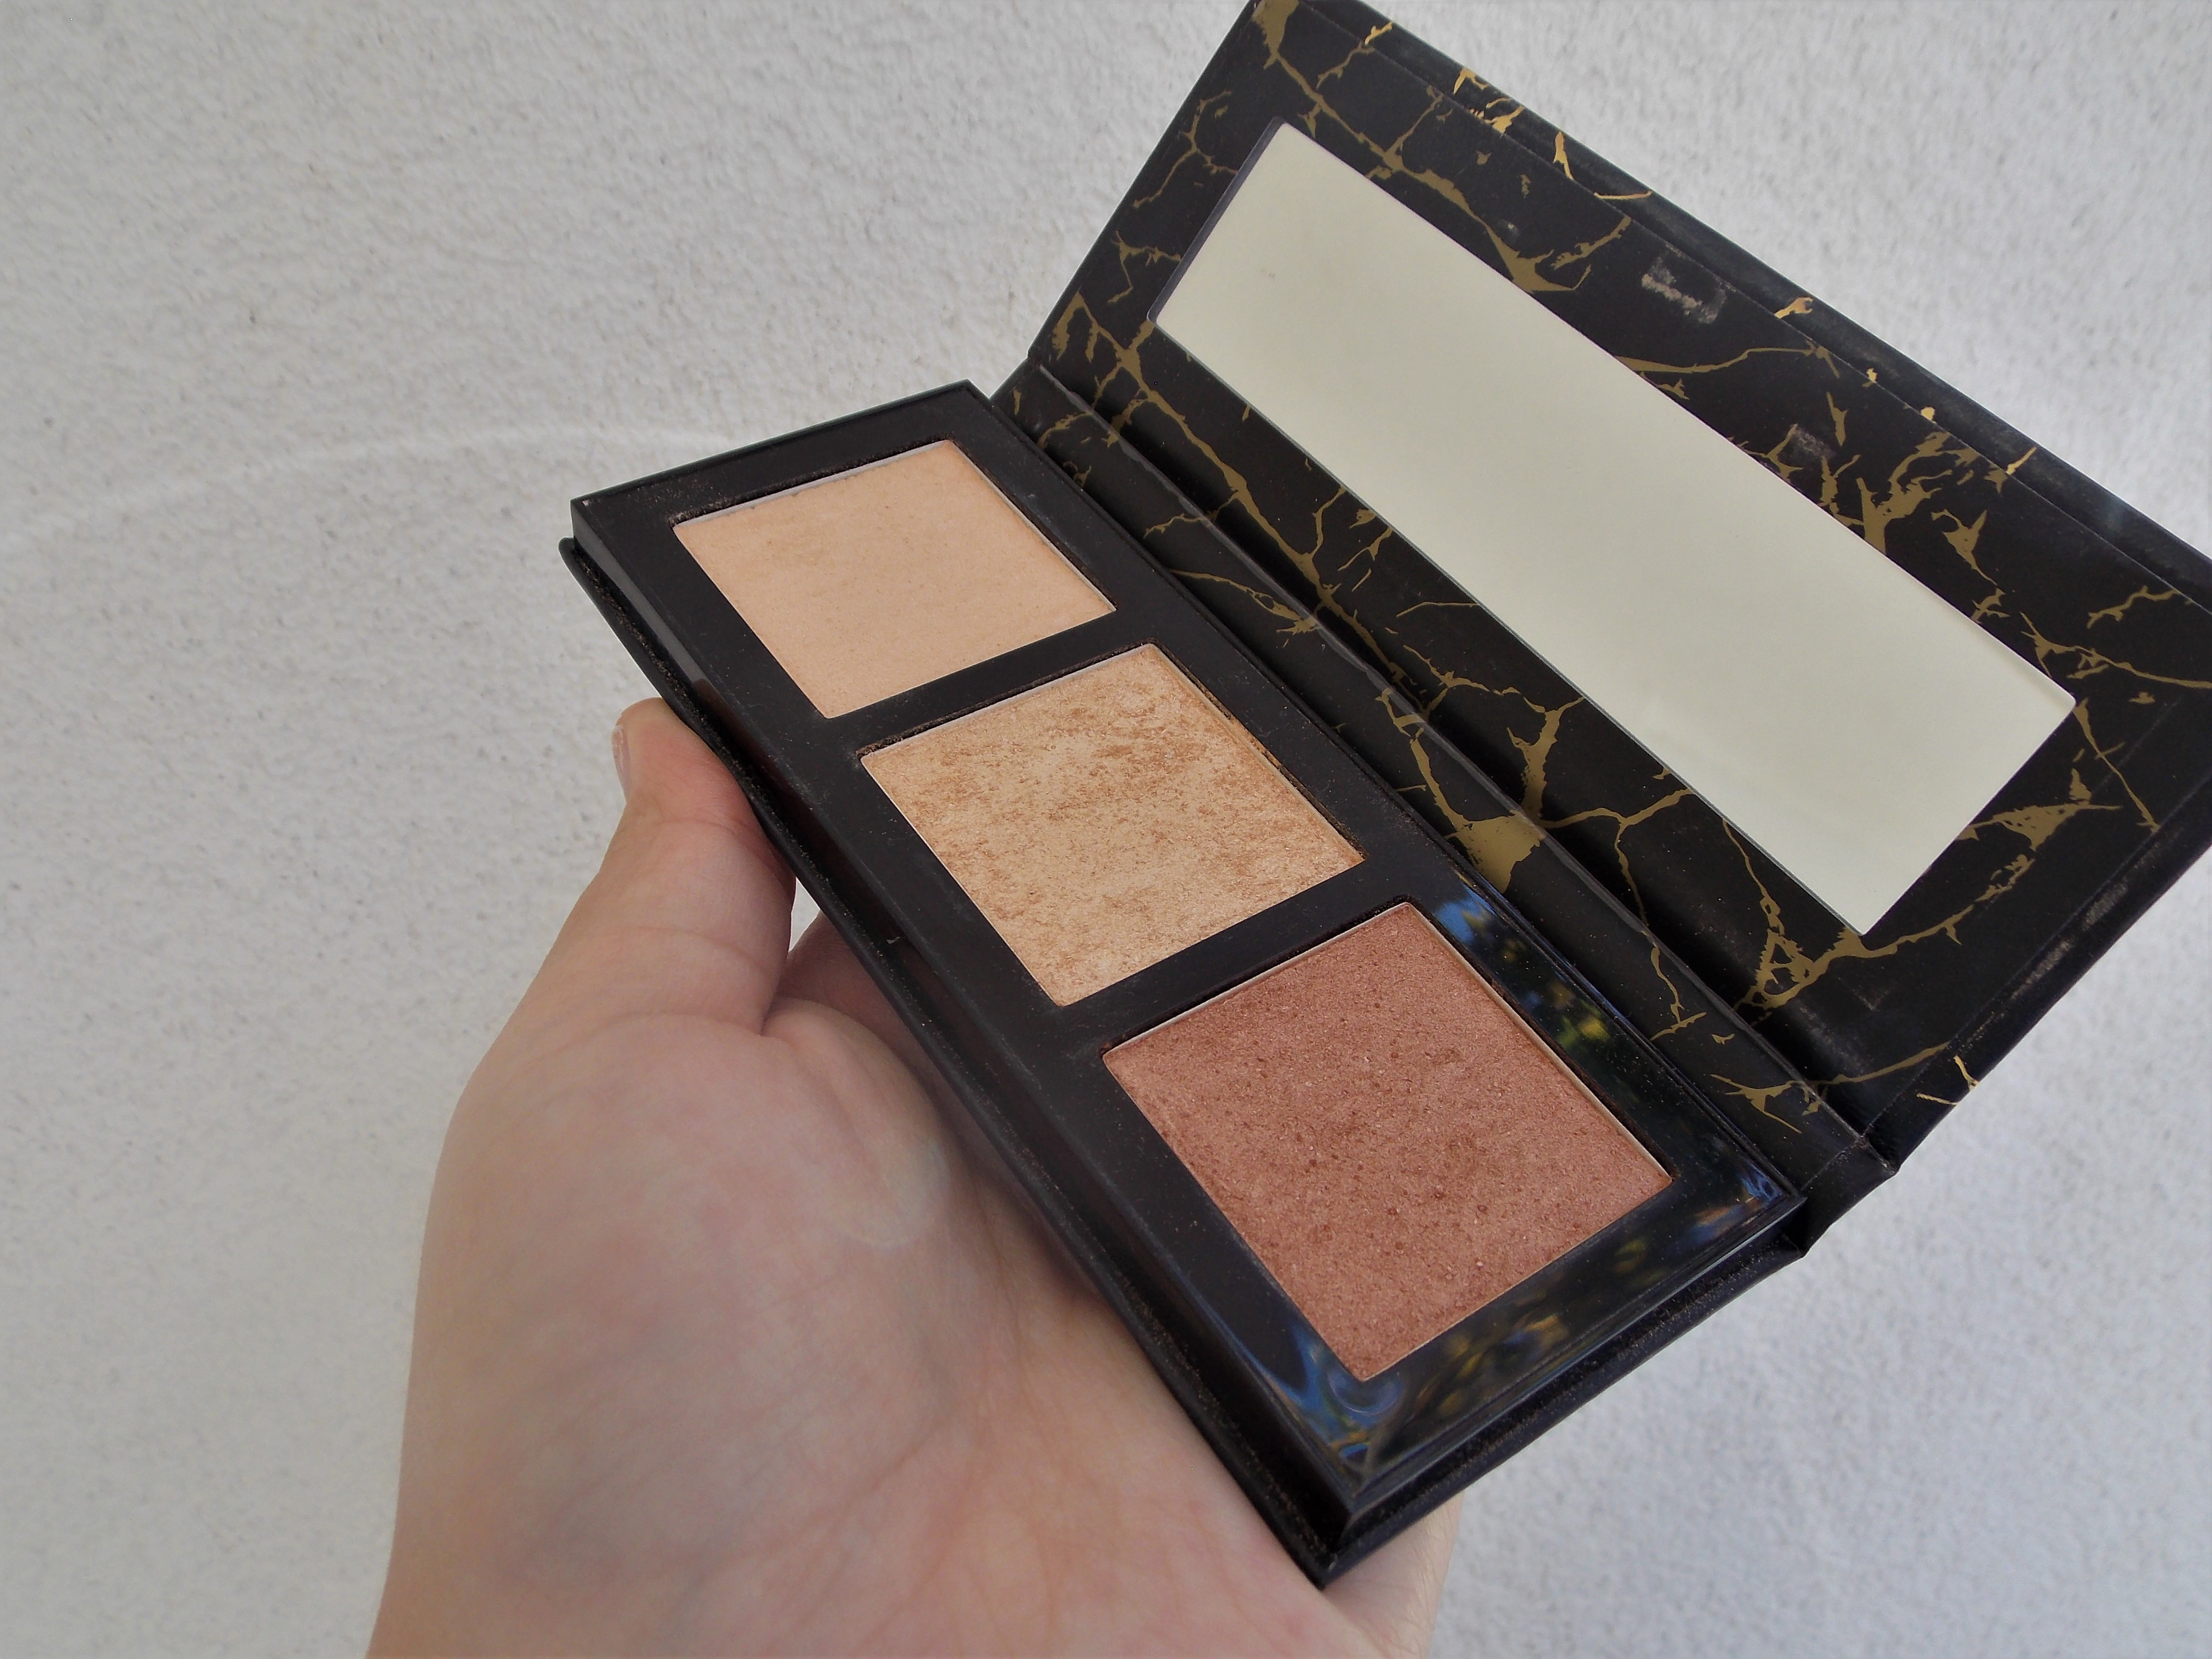 catrice luminice highlight & bronze glow palette review recenzija 020 livinglikev fashion blogger living like v beauty blogger catrice luminice paleta recenzija 020 feel good